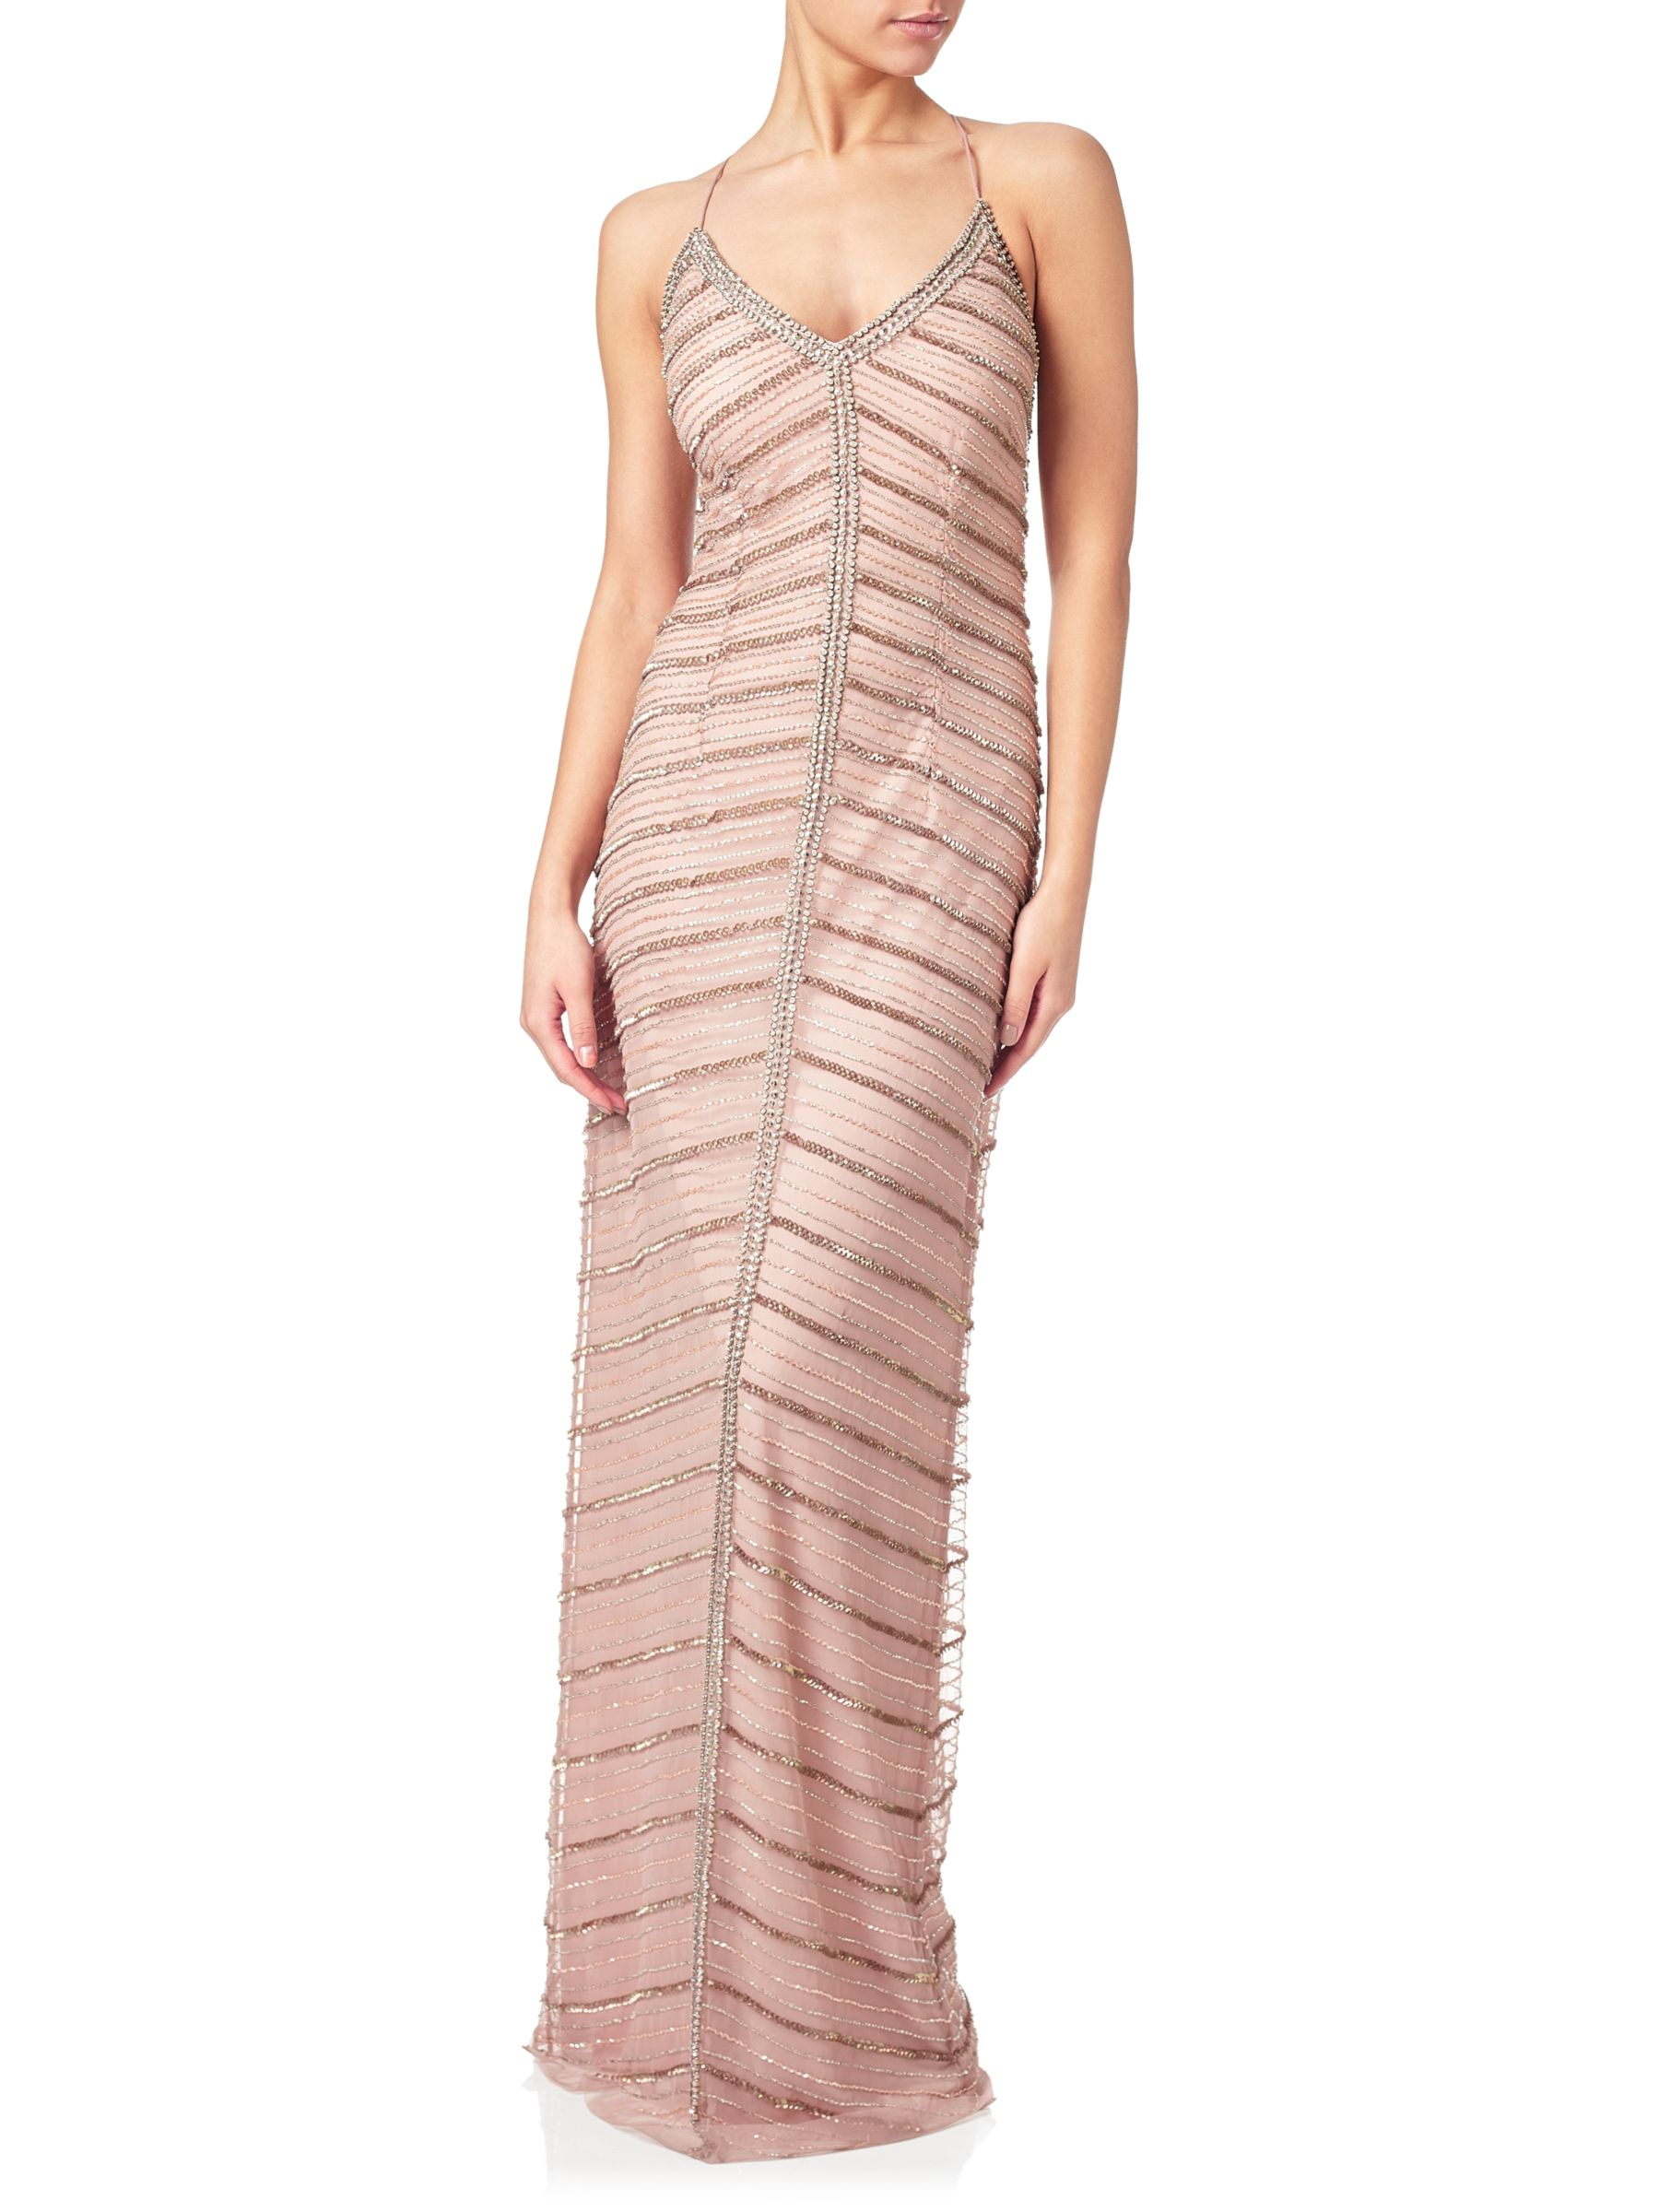 Adrianna Papell Adrianna Papell Chevron Beaded Column Gown, Rose Gold